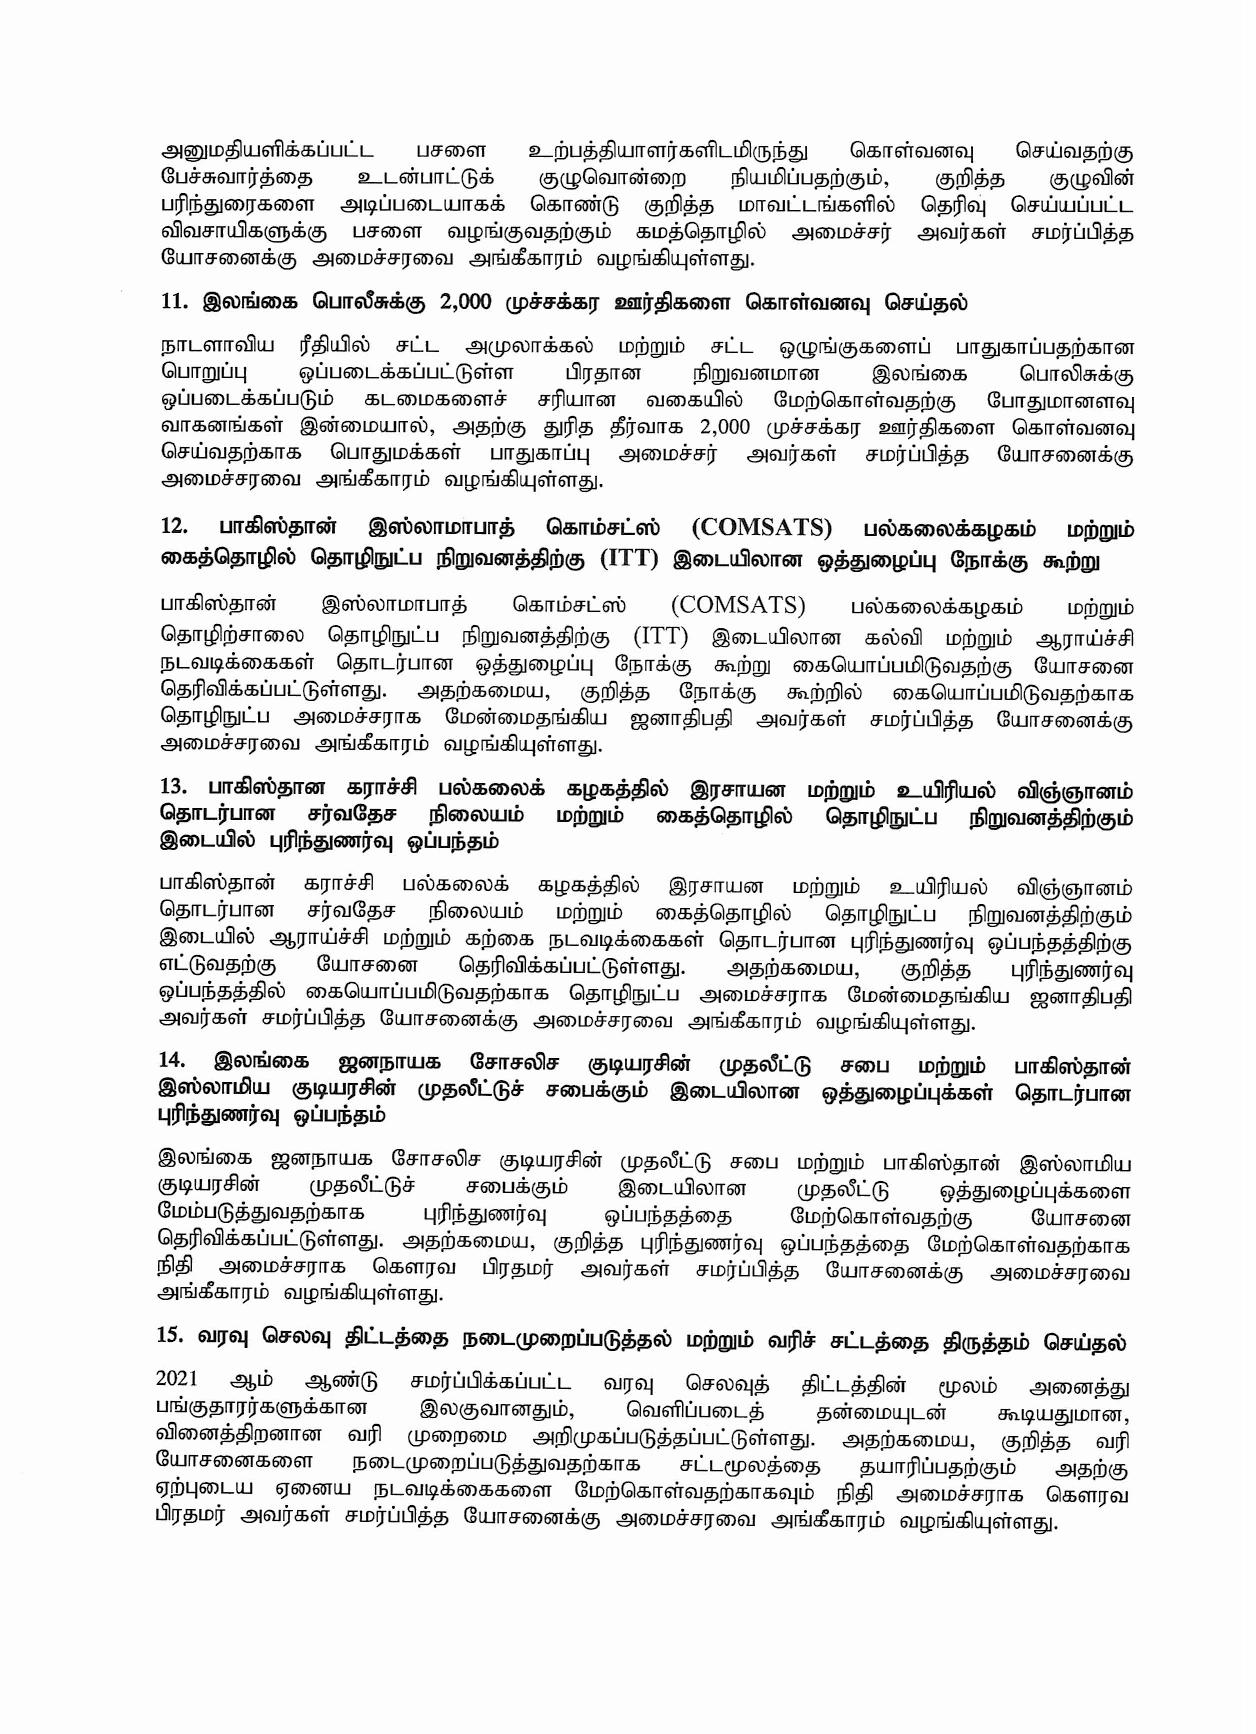 Cabinet Decision on 22.02.2021 Tamil page 004